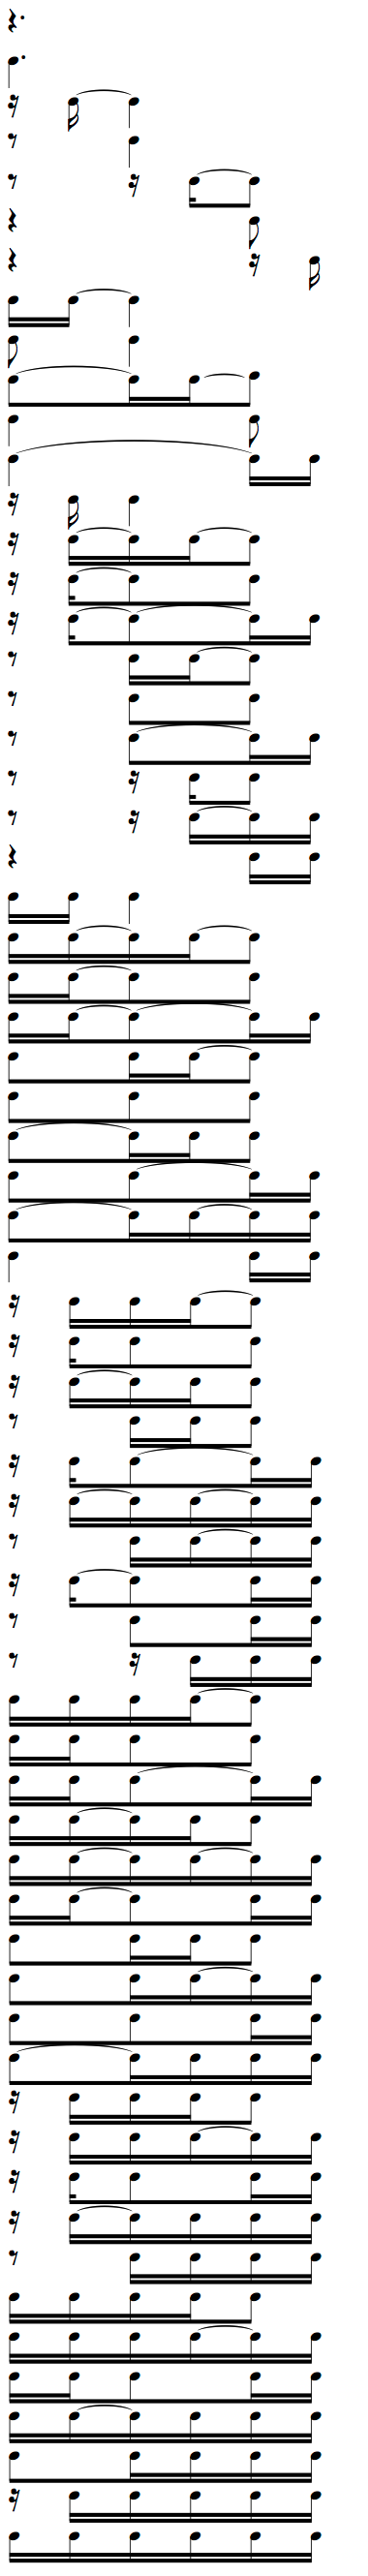 Complete Rhythms cheat sheet for Dotted Quarter Note with 16th Notes Tied Ties Weak Beat